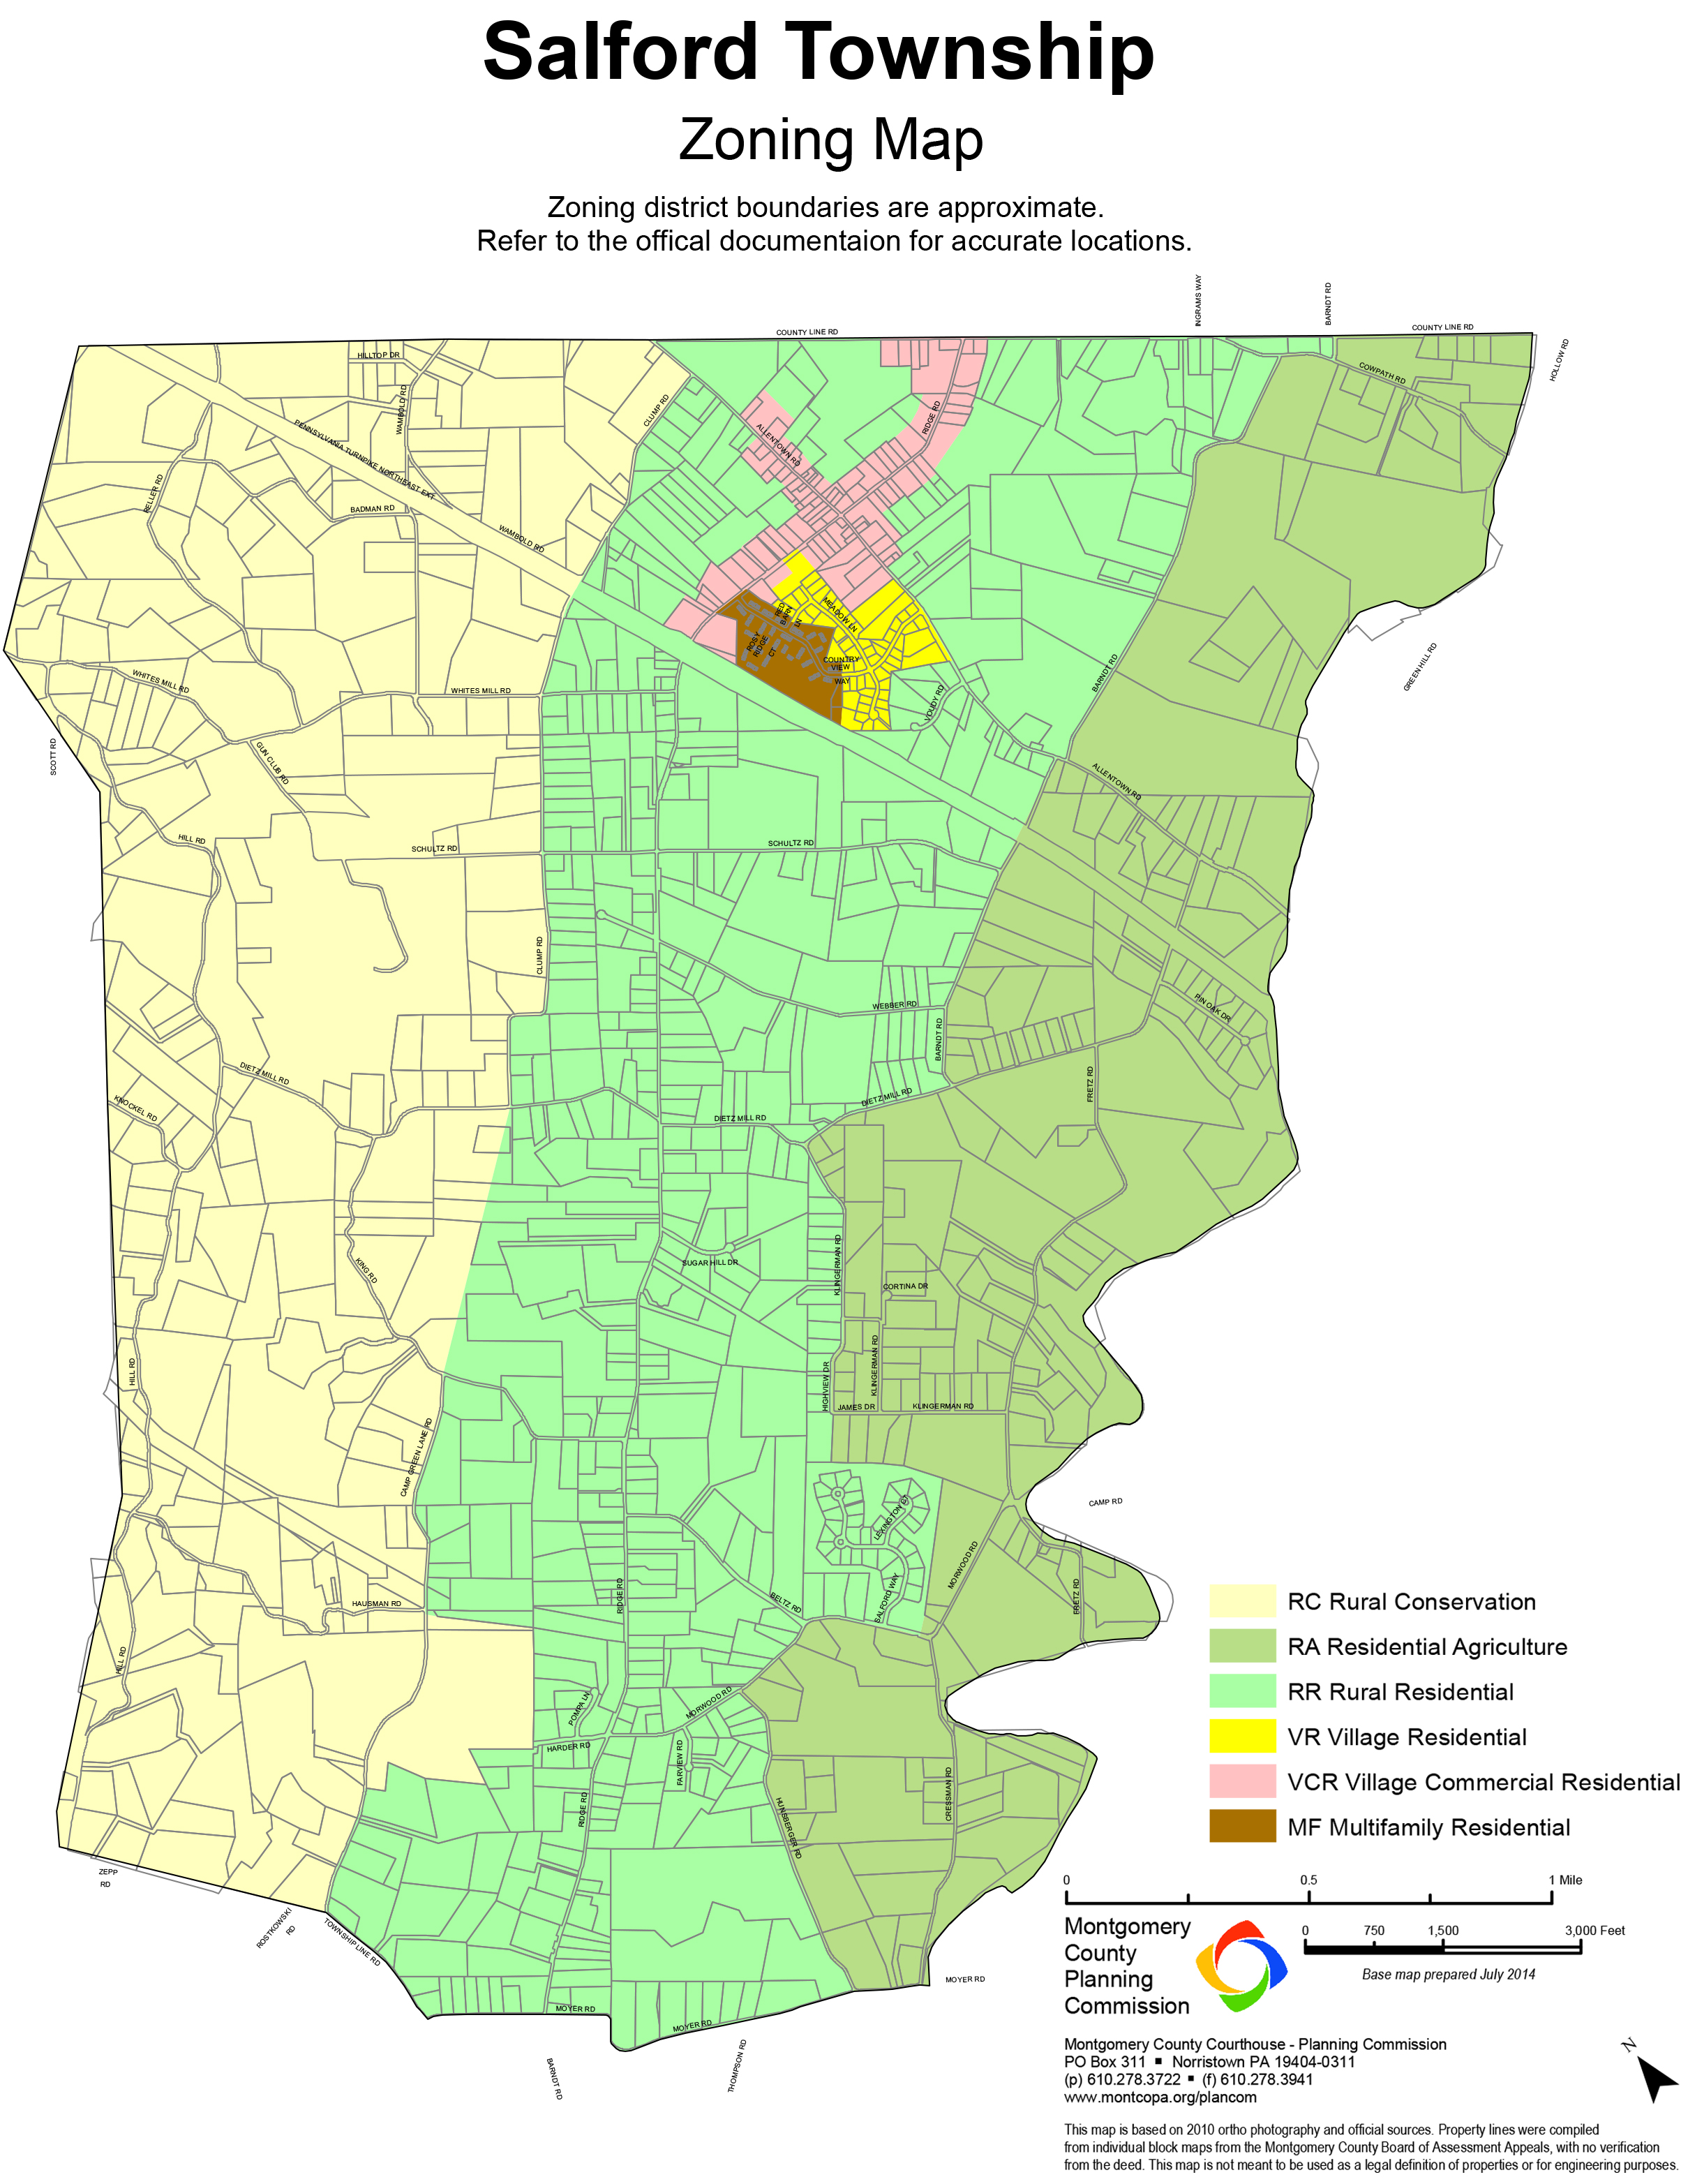 Salford Township Montgomery County Pennsylvania Zoning